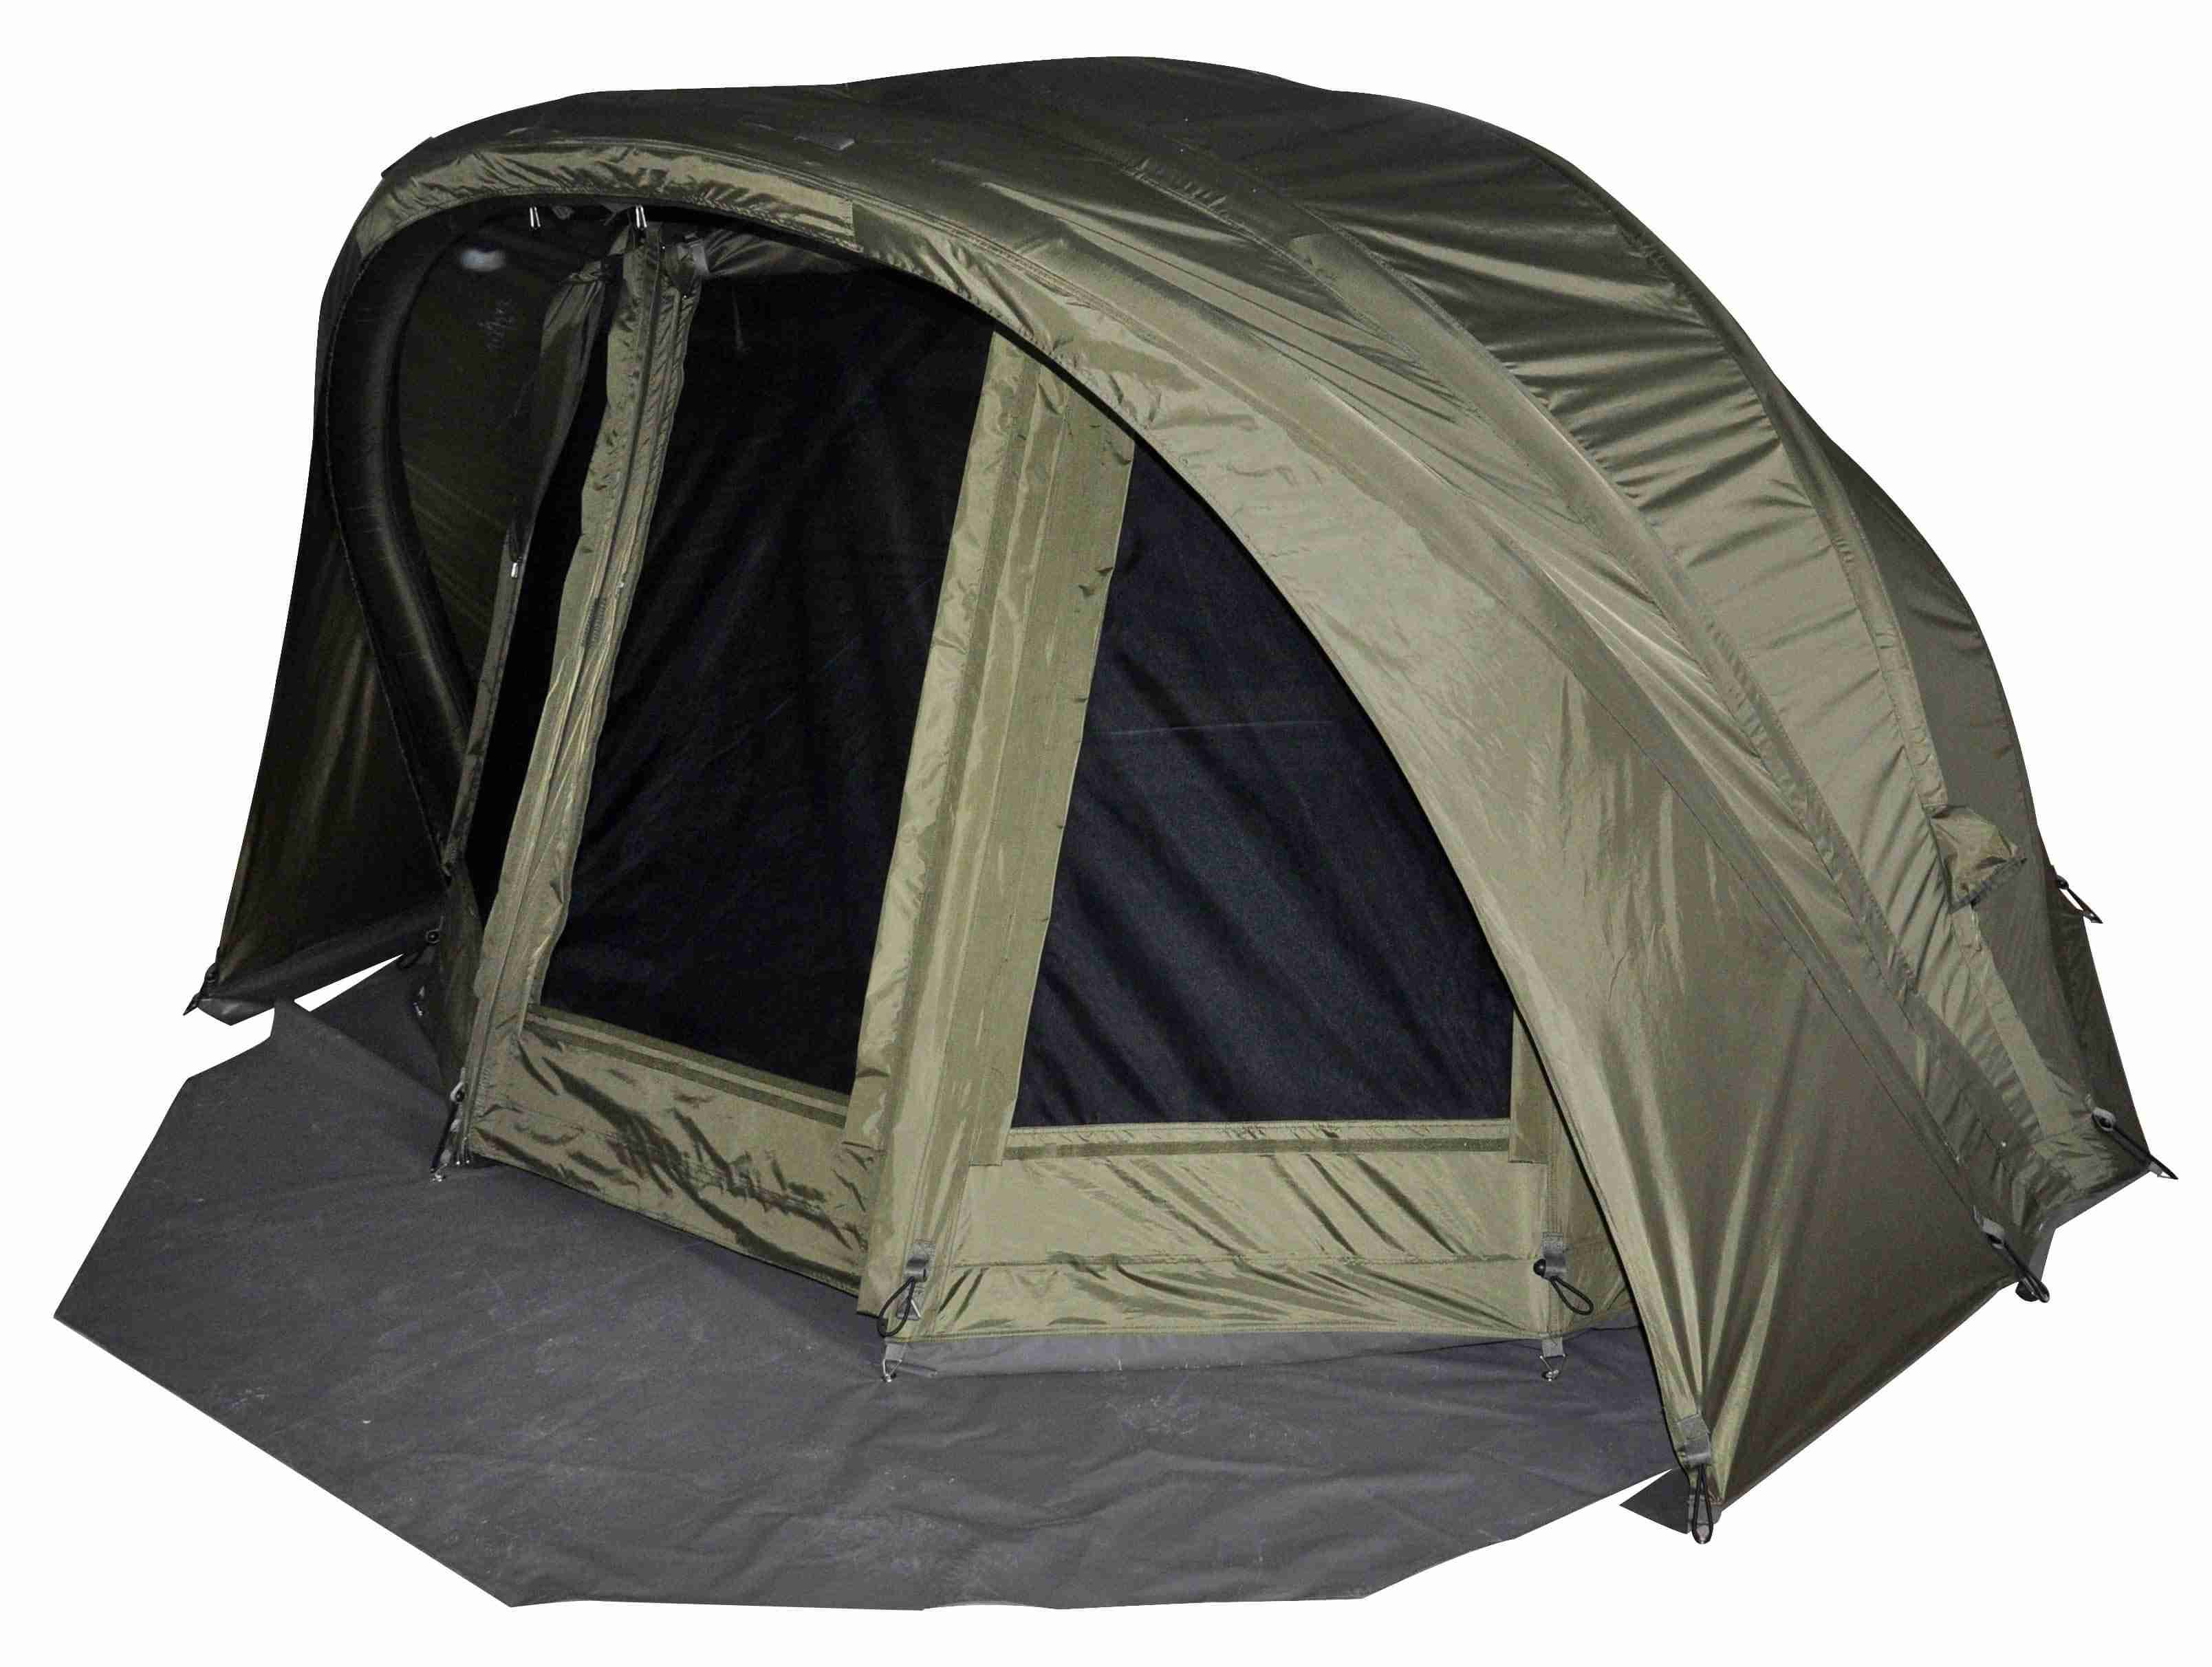 Angelzelt, ​MK-Angelsport Air Dome - Aufblasbares Bivvy, Bivvy, Brolly, Karpfenzelt